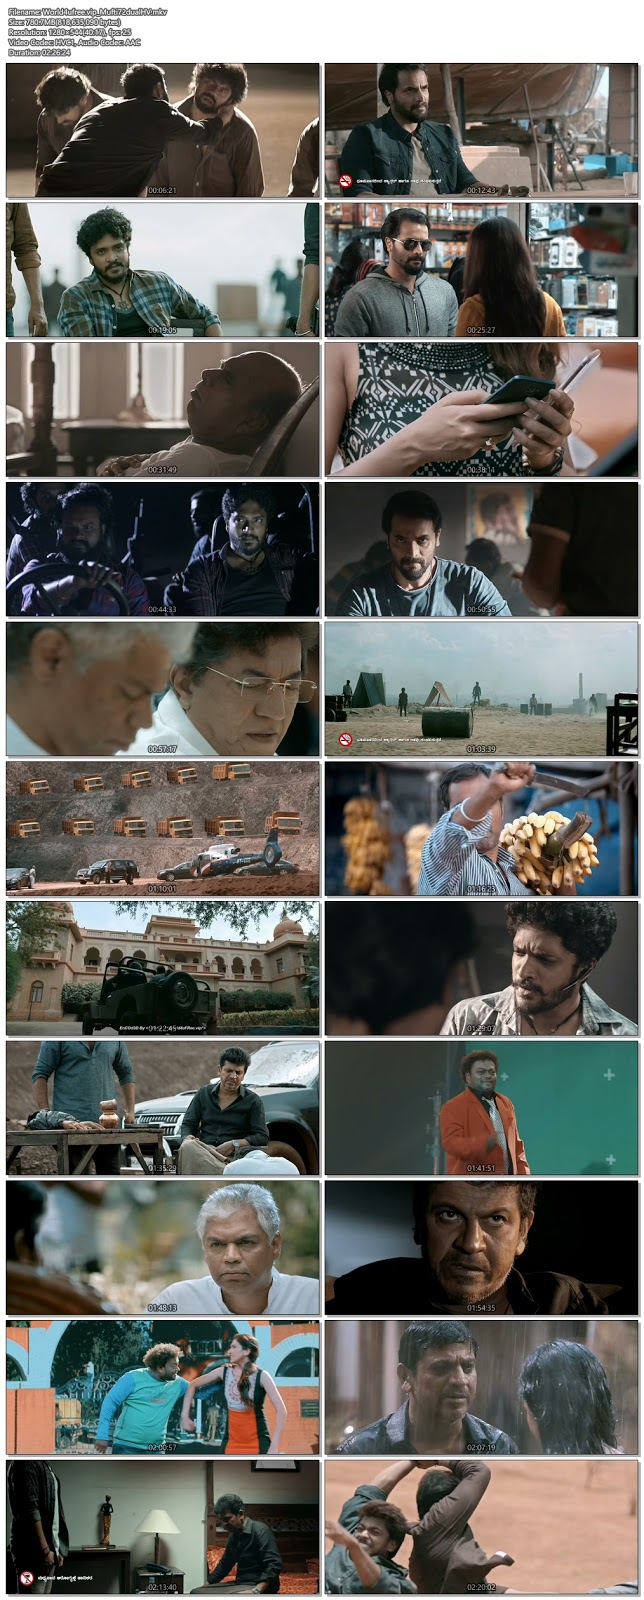 Mufti 2017 Dual Audio 720p UNCUT HDRip 800Mb x265 HEVC world4ufree.vip , South indian movie Mufti 2017 hindi dubbed world4ufree.vip 720p hdrip webrip dvdrip 700mb brrip bluray free download or watch online at world4ufree.vip